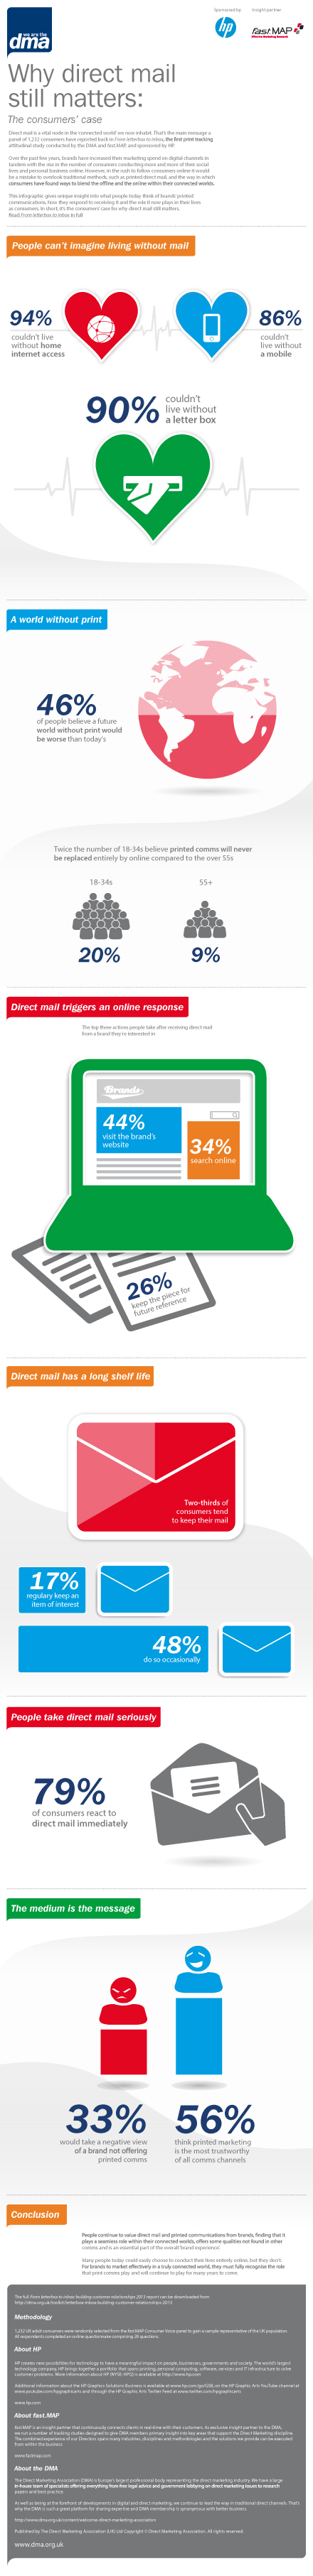 why direct mail matters